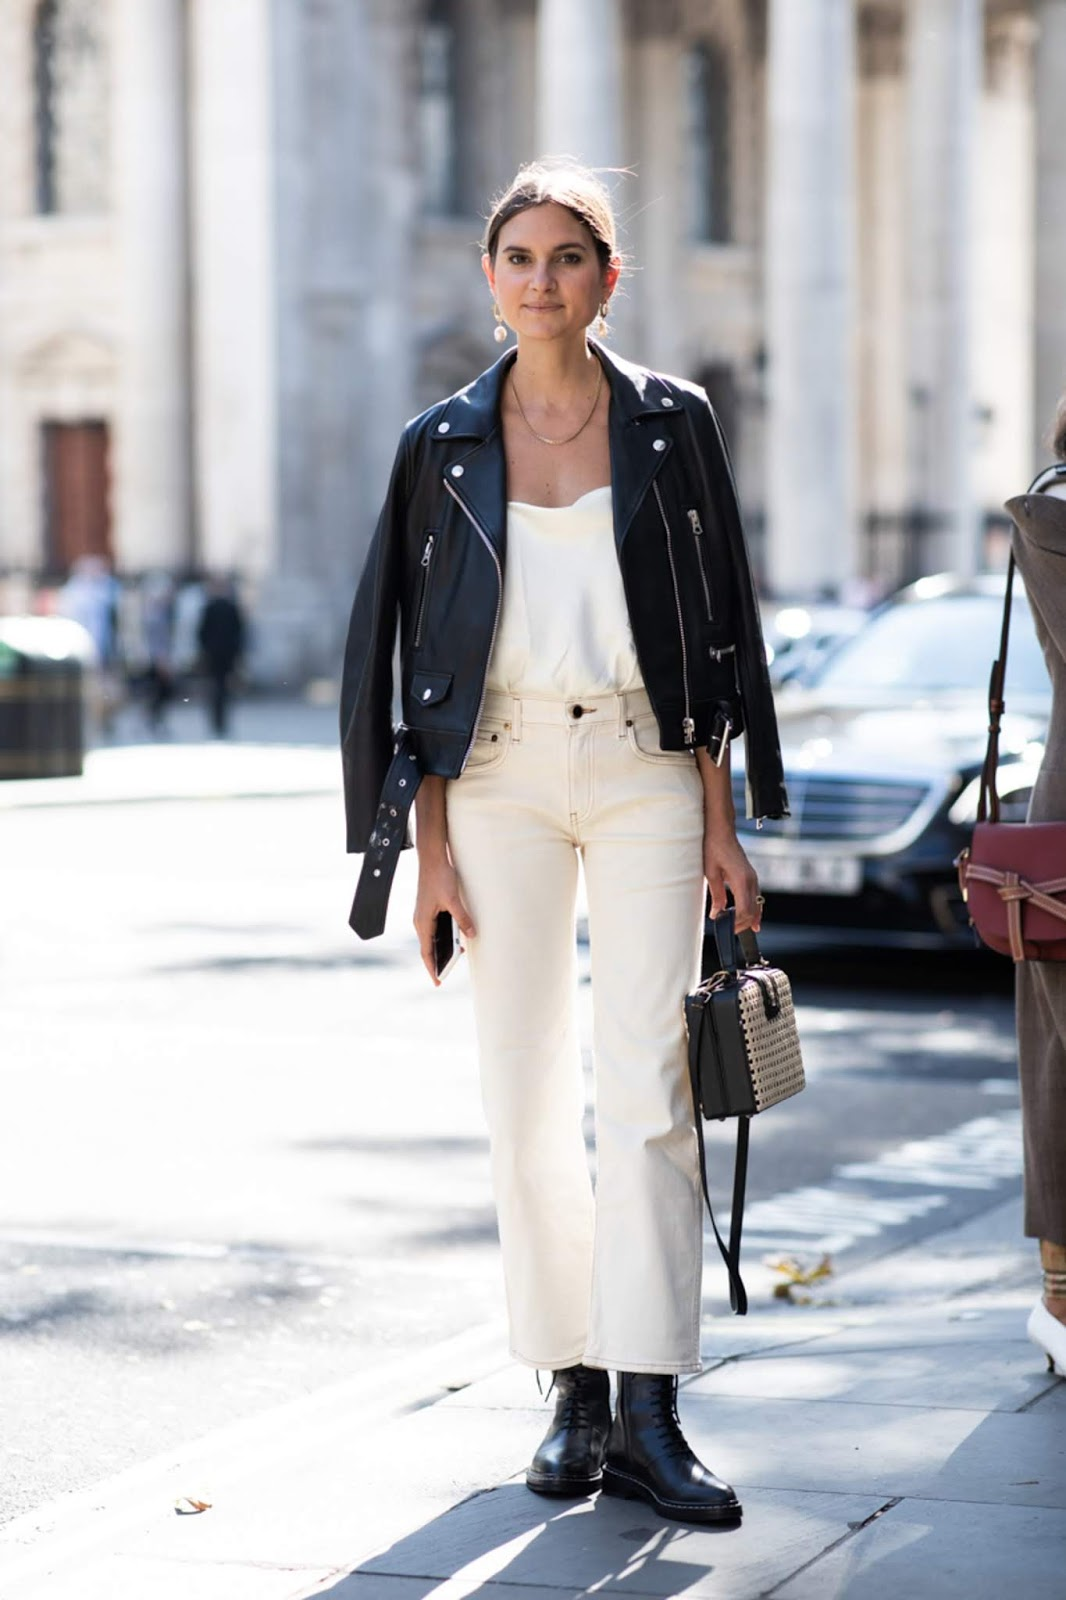 Spring Outfit Inspiration: Leather Moto Jacket, White Cami Top, Off-White Jeans, Black Combat Boots